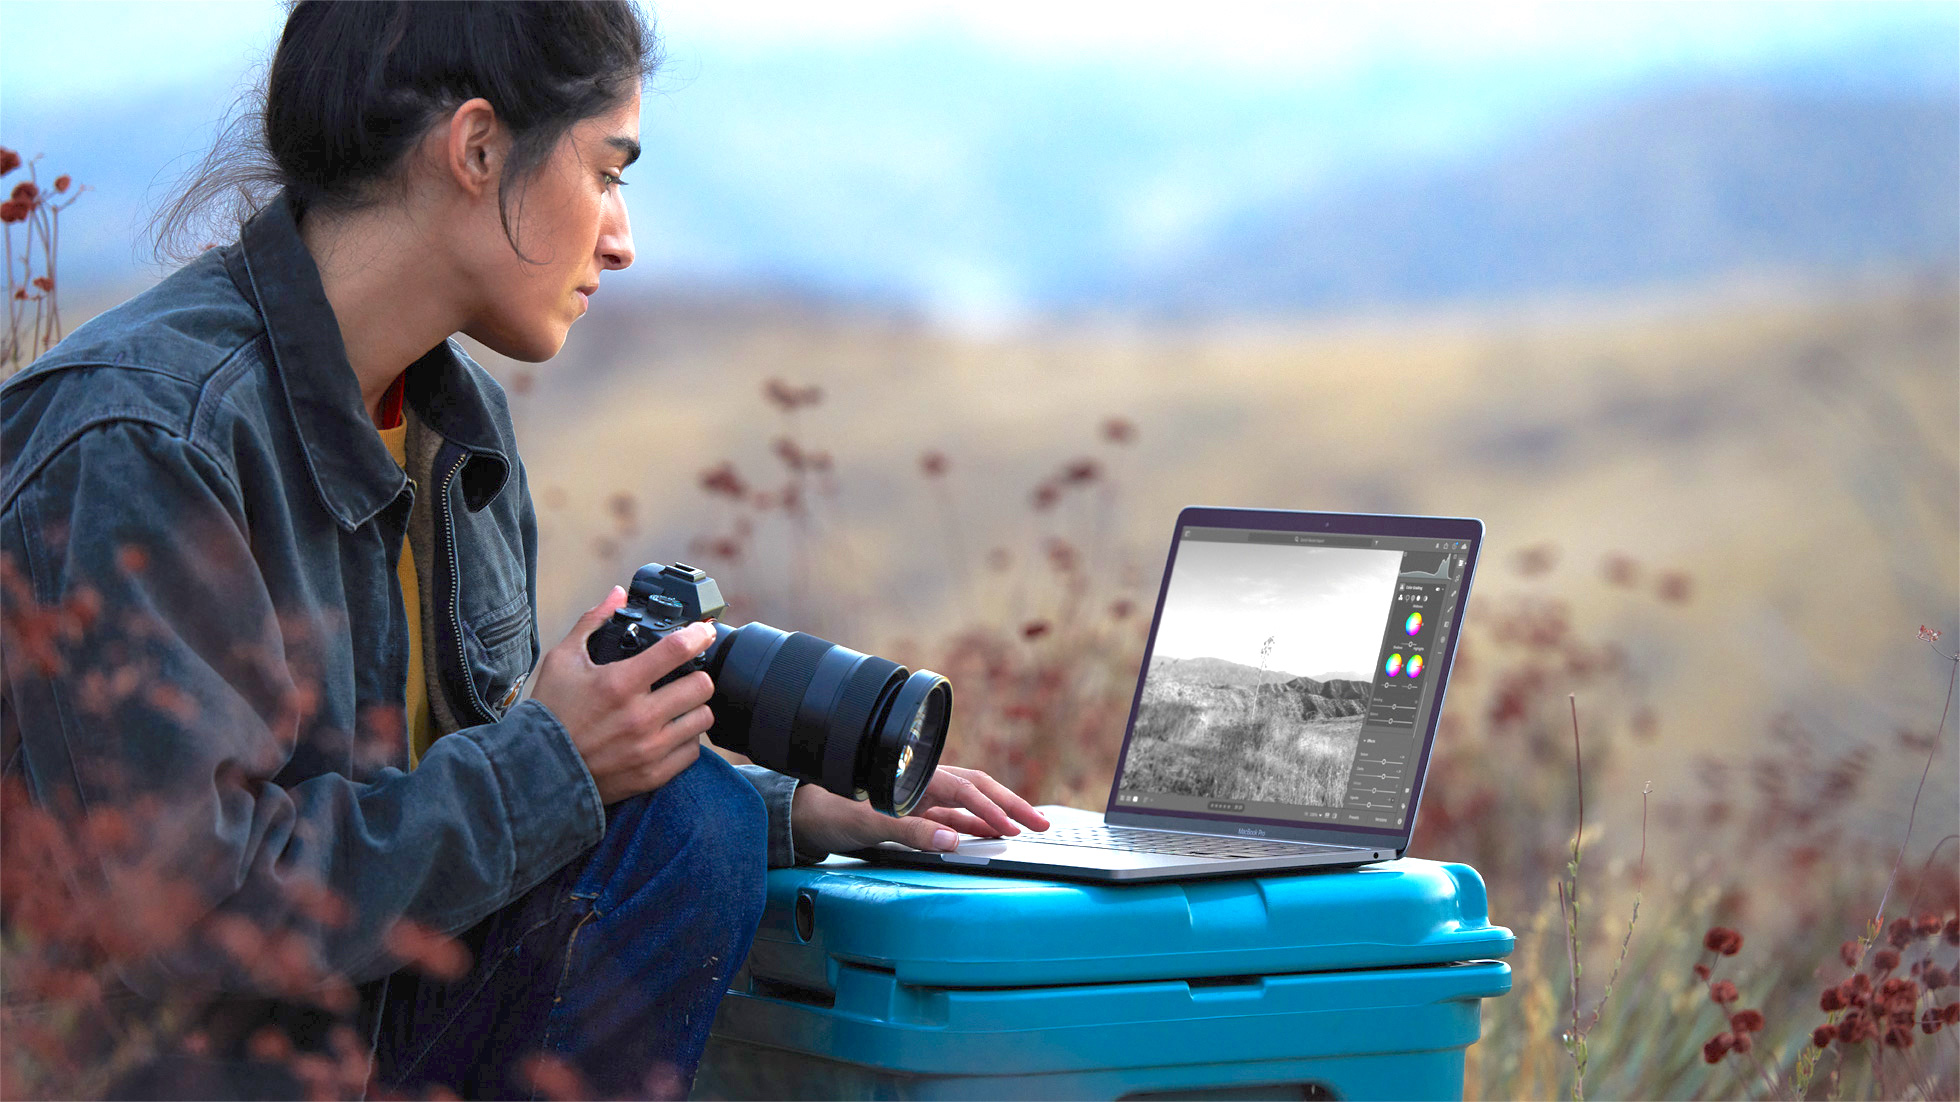 Best Laptop for Photography Class